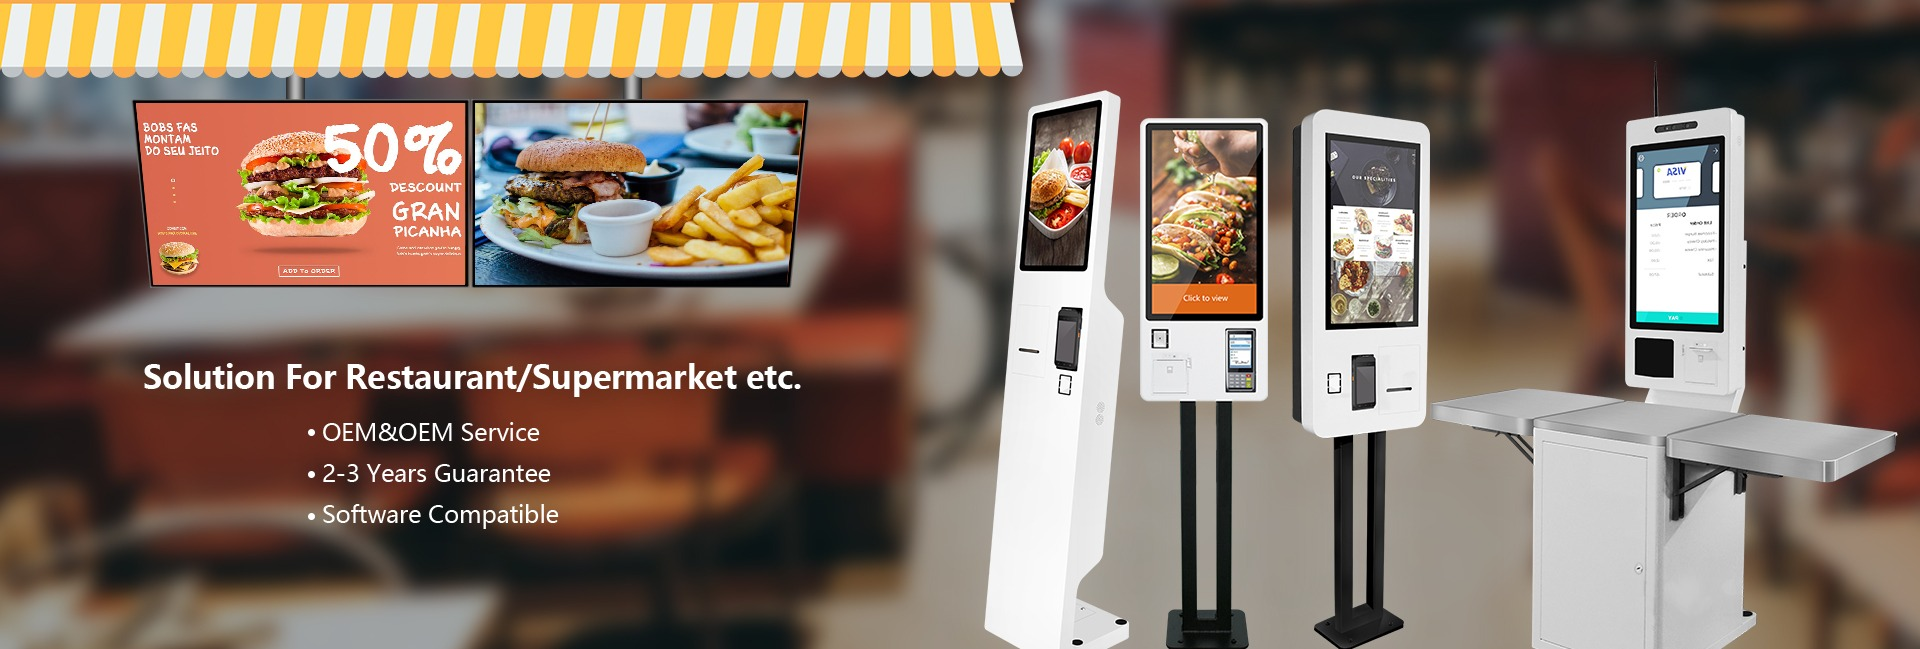 pdq machines for small businesses